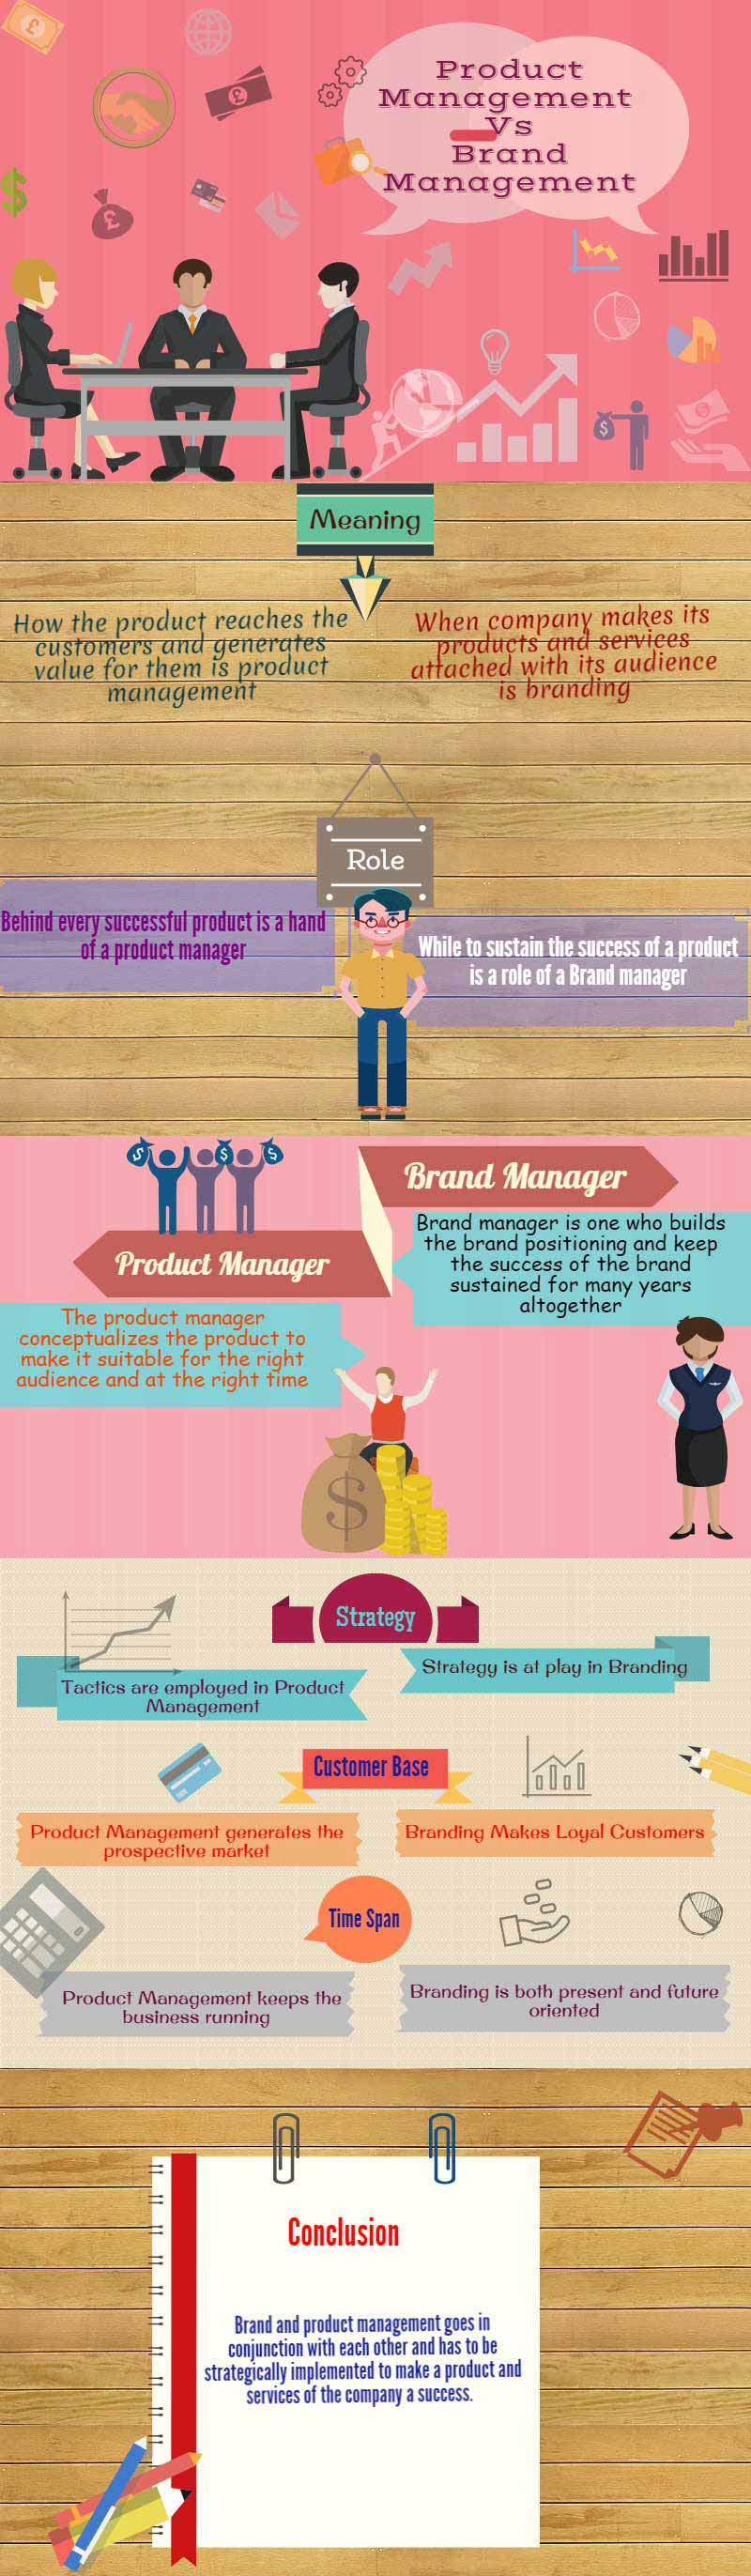 prouct and brand management midterm What is a 'product line' a product line is a group of related products under a single brand sold by the same company companies sell multiple product lines under their various brands companies.